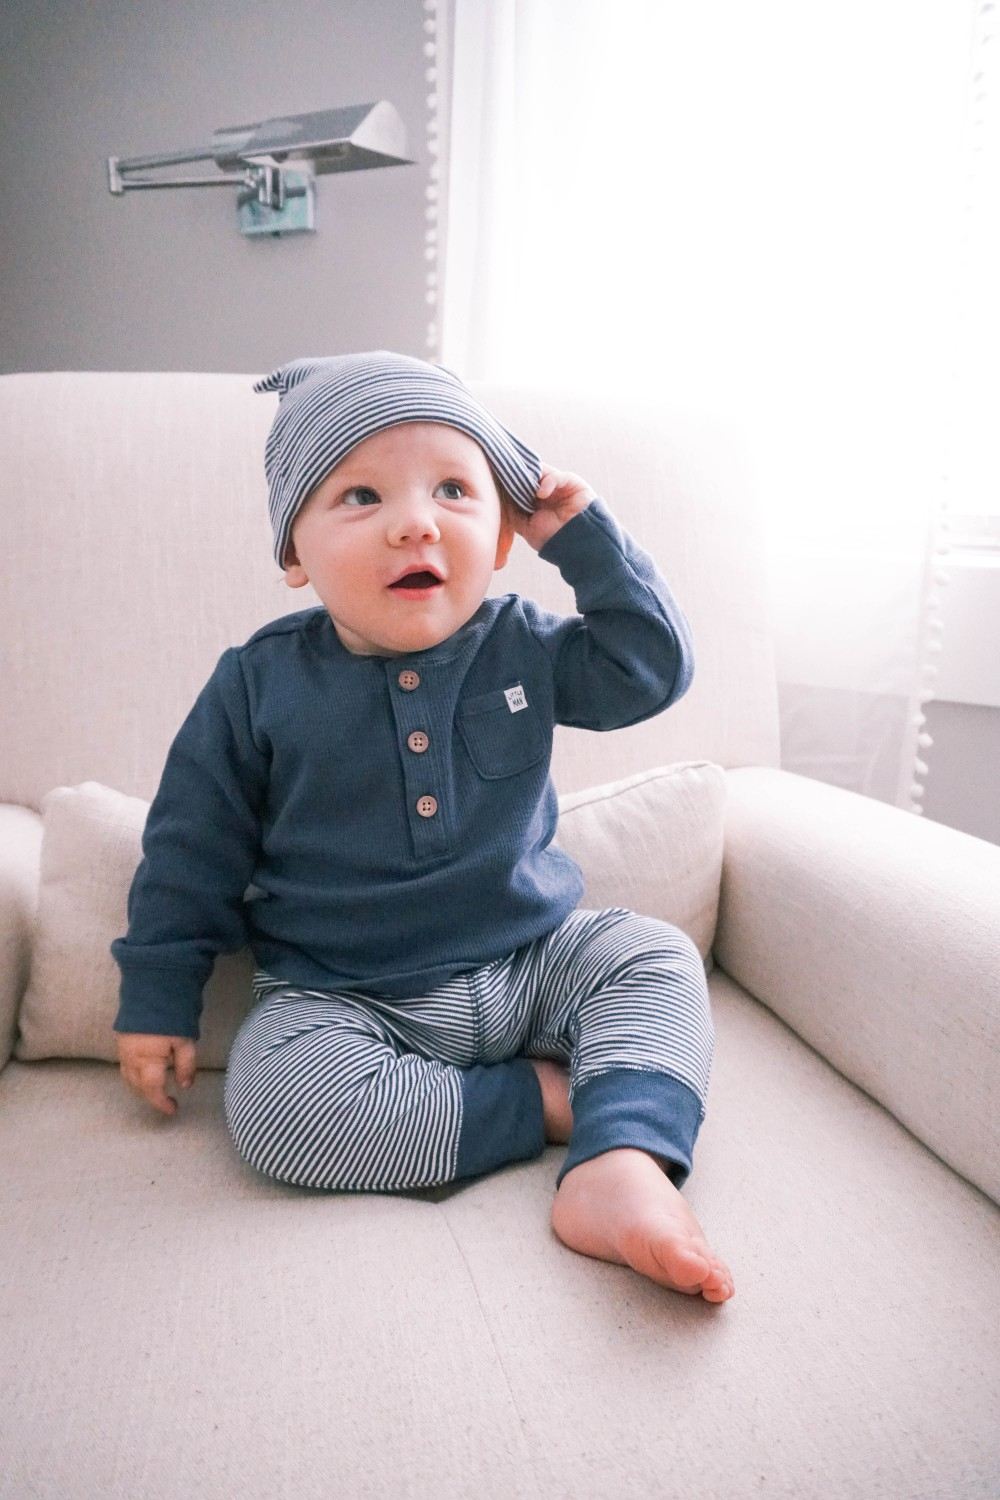 Carter's Baby-JCPenney-Baby Boy Clothes Under $30-Fall Fashion for Baby-Baby Clothing Sale-Have Need Want 11